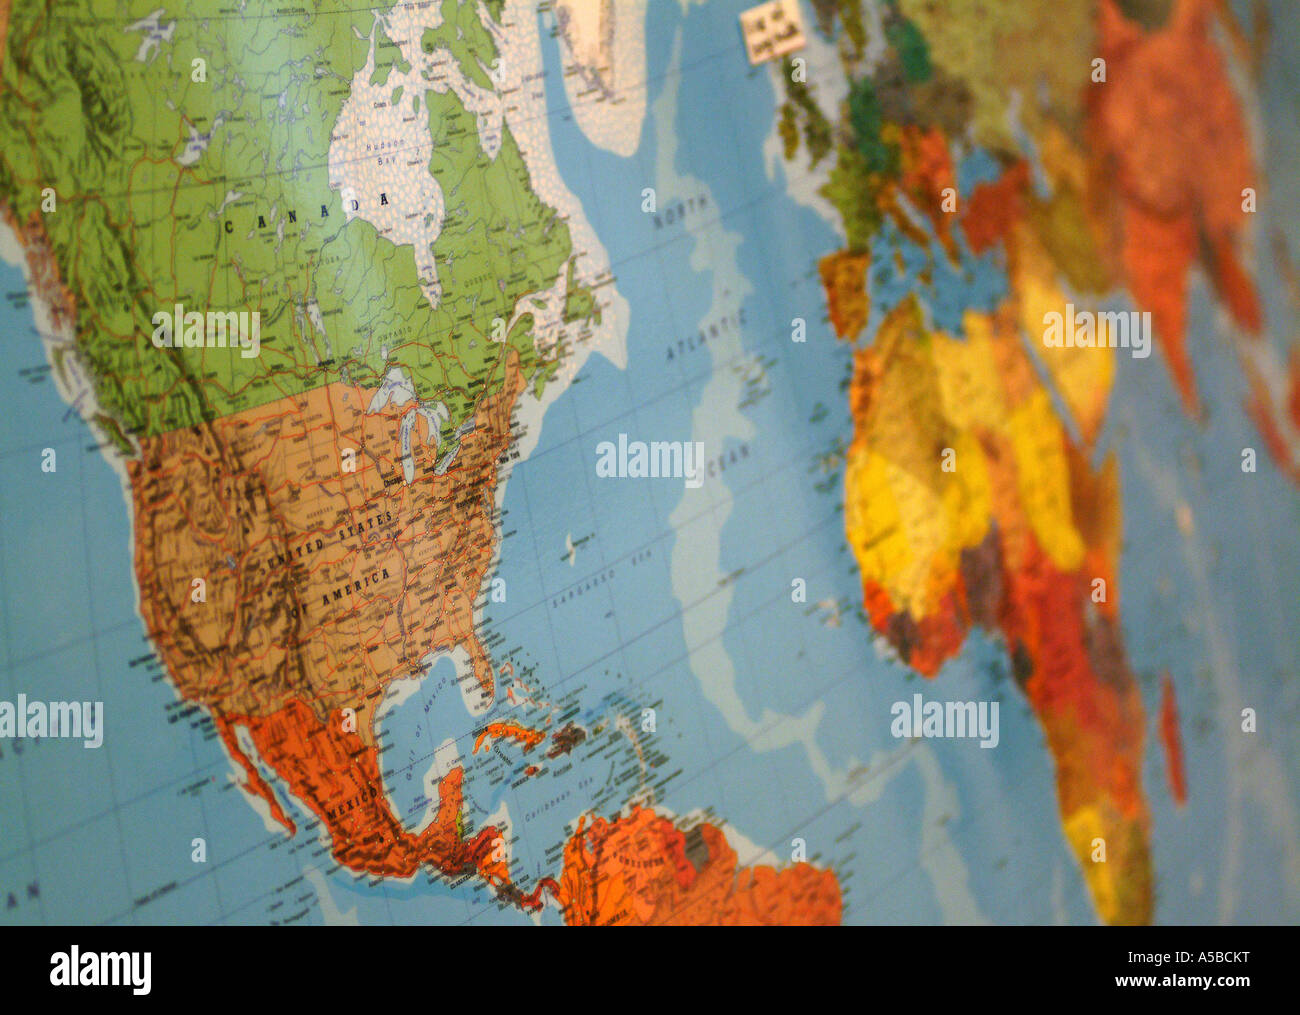 Close-up of world map. - Stock Image